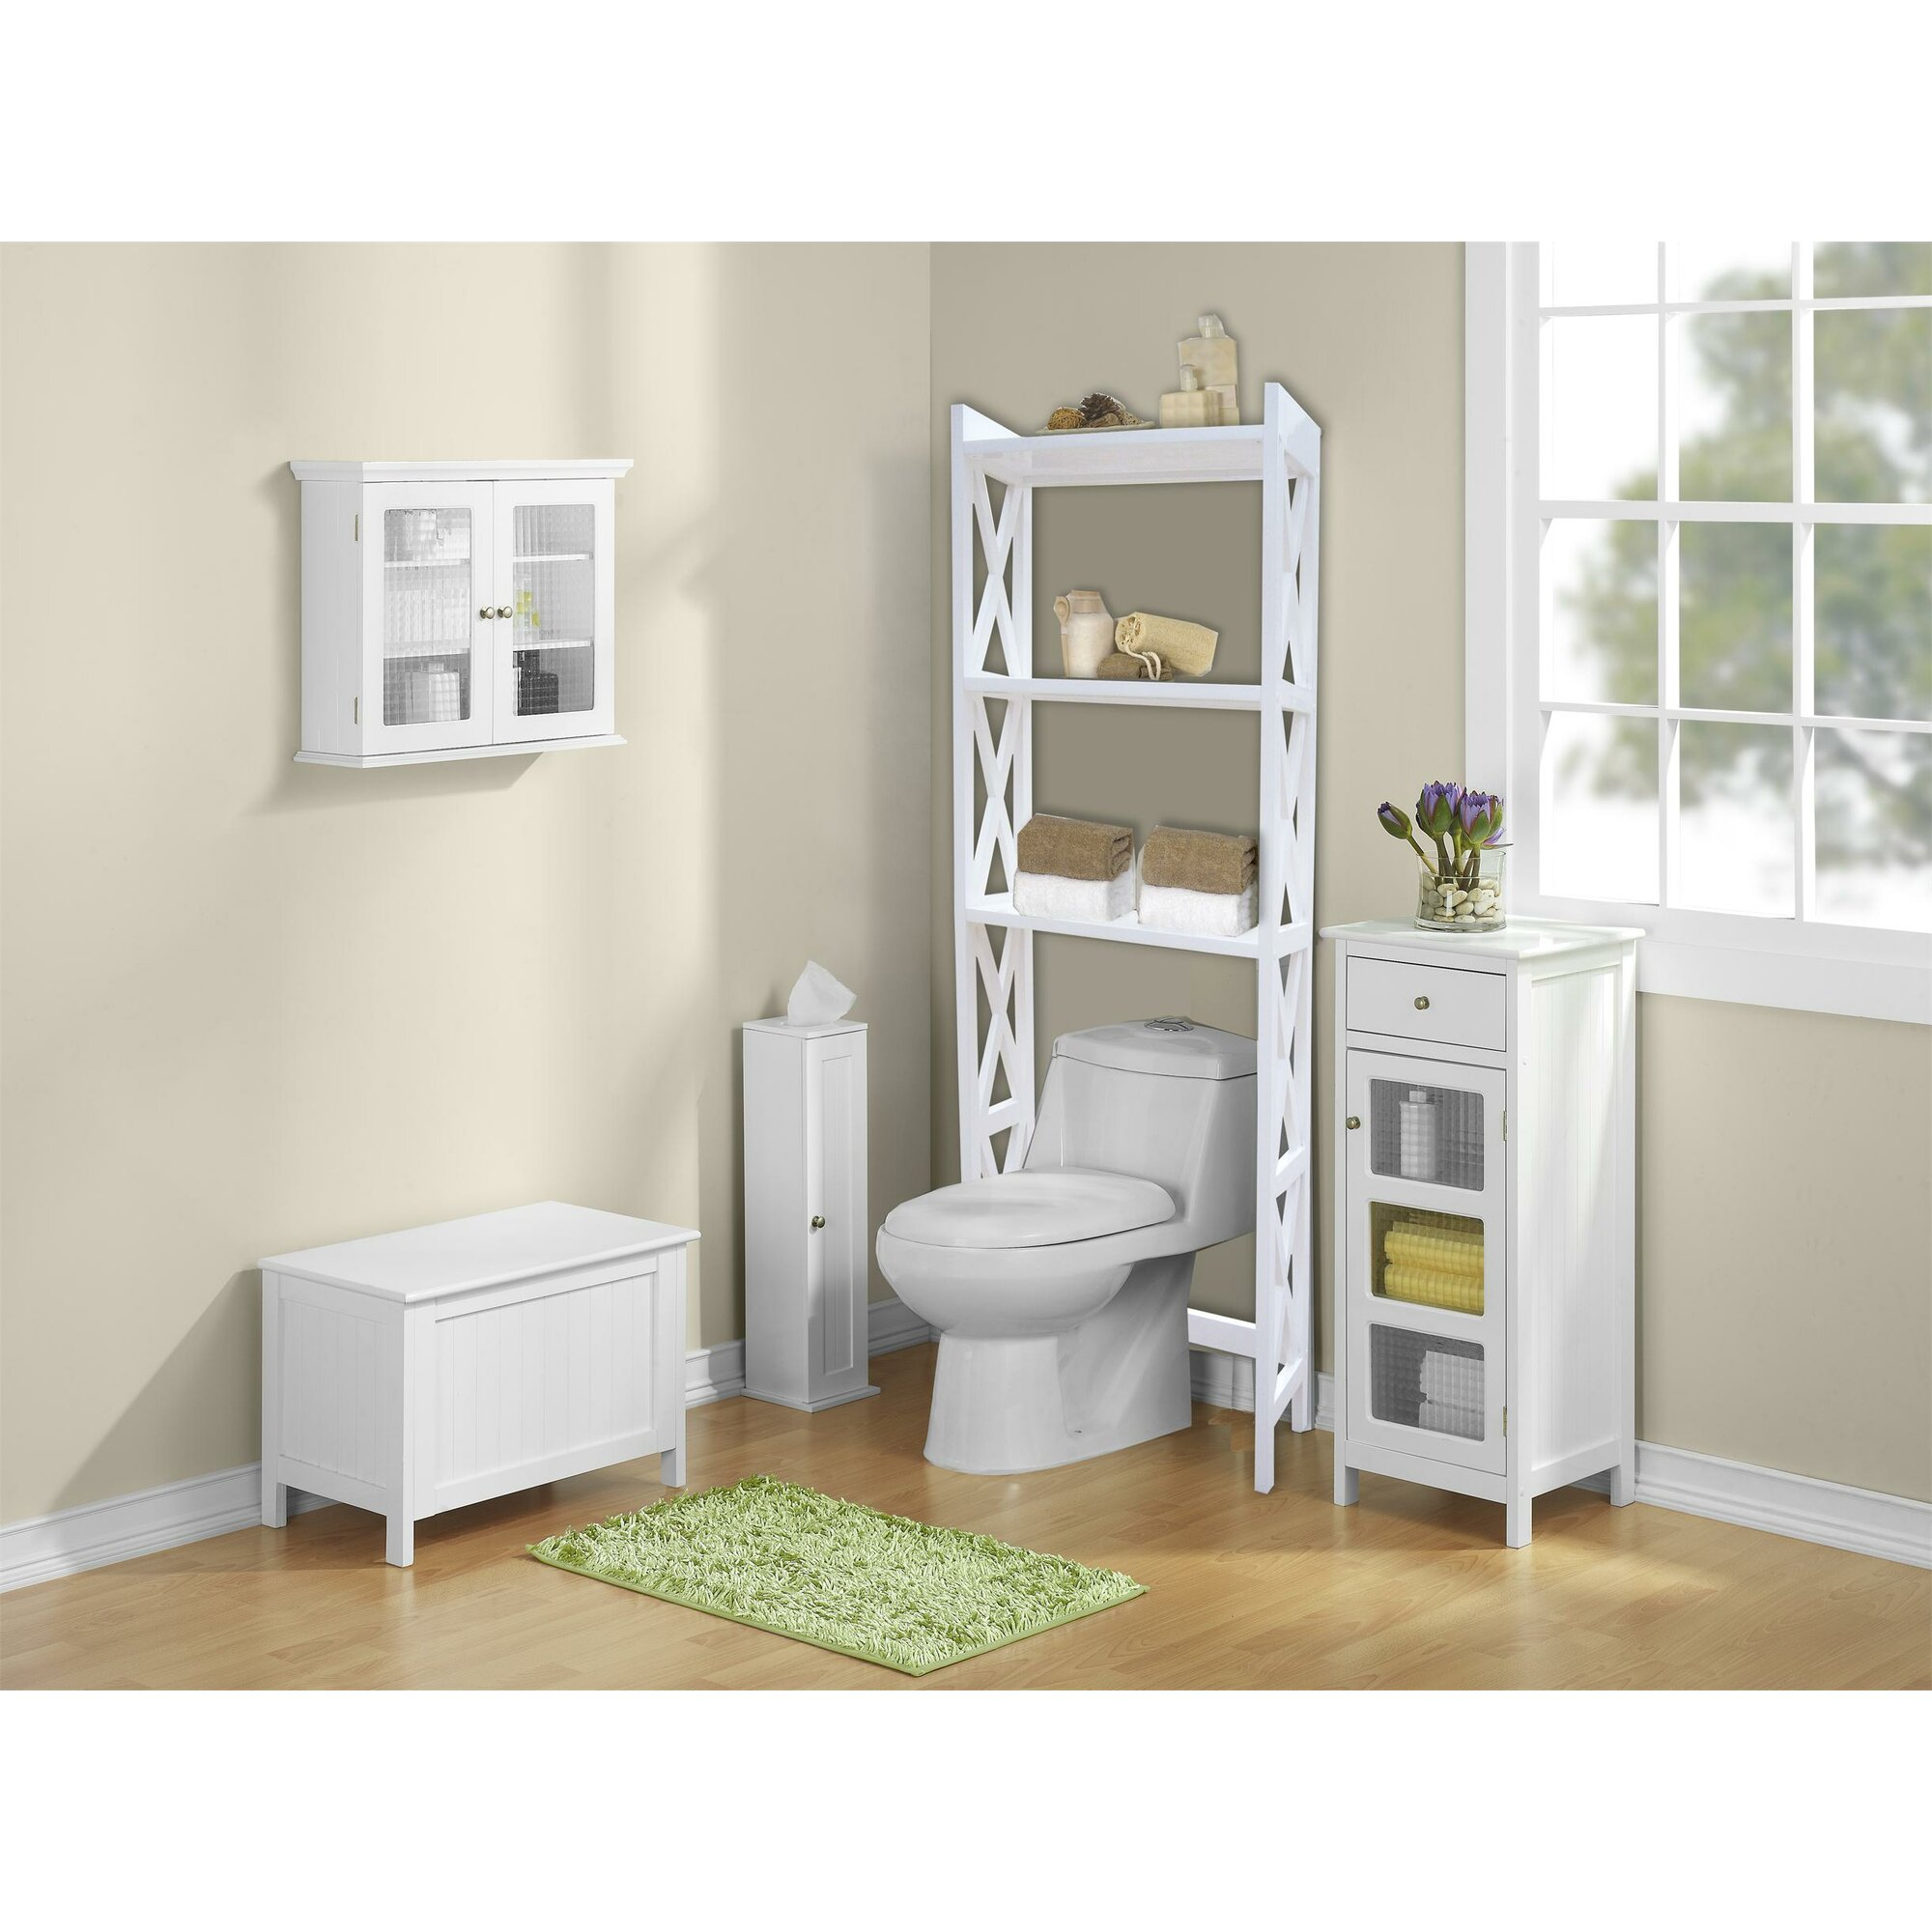 Jenlea Bathroom Space Saver 245 W x 62 H Over the Toilet